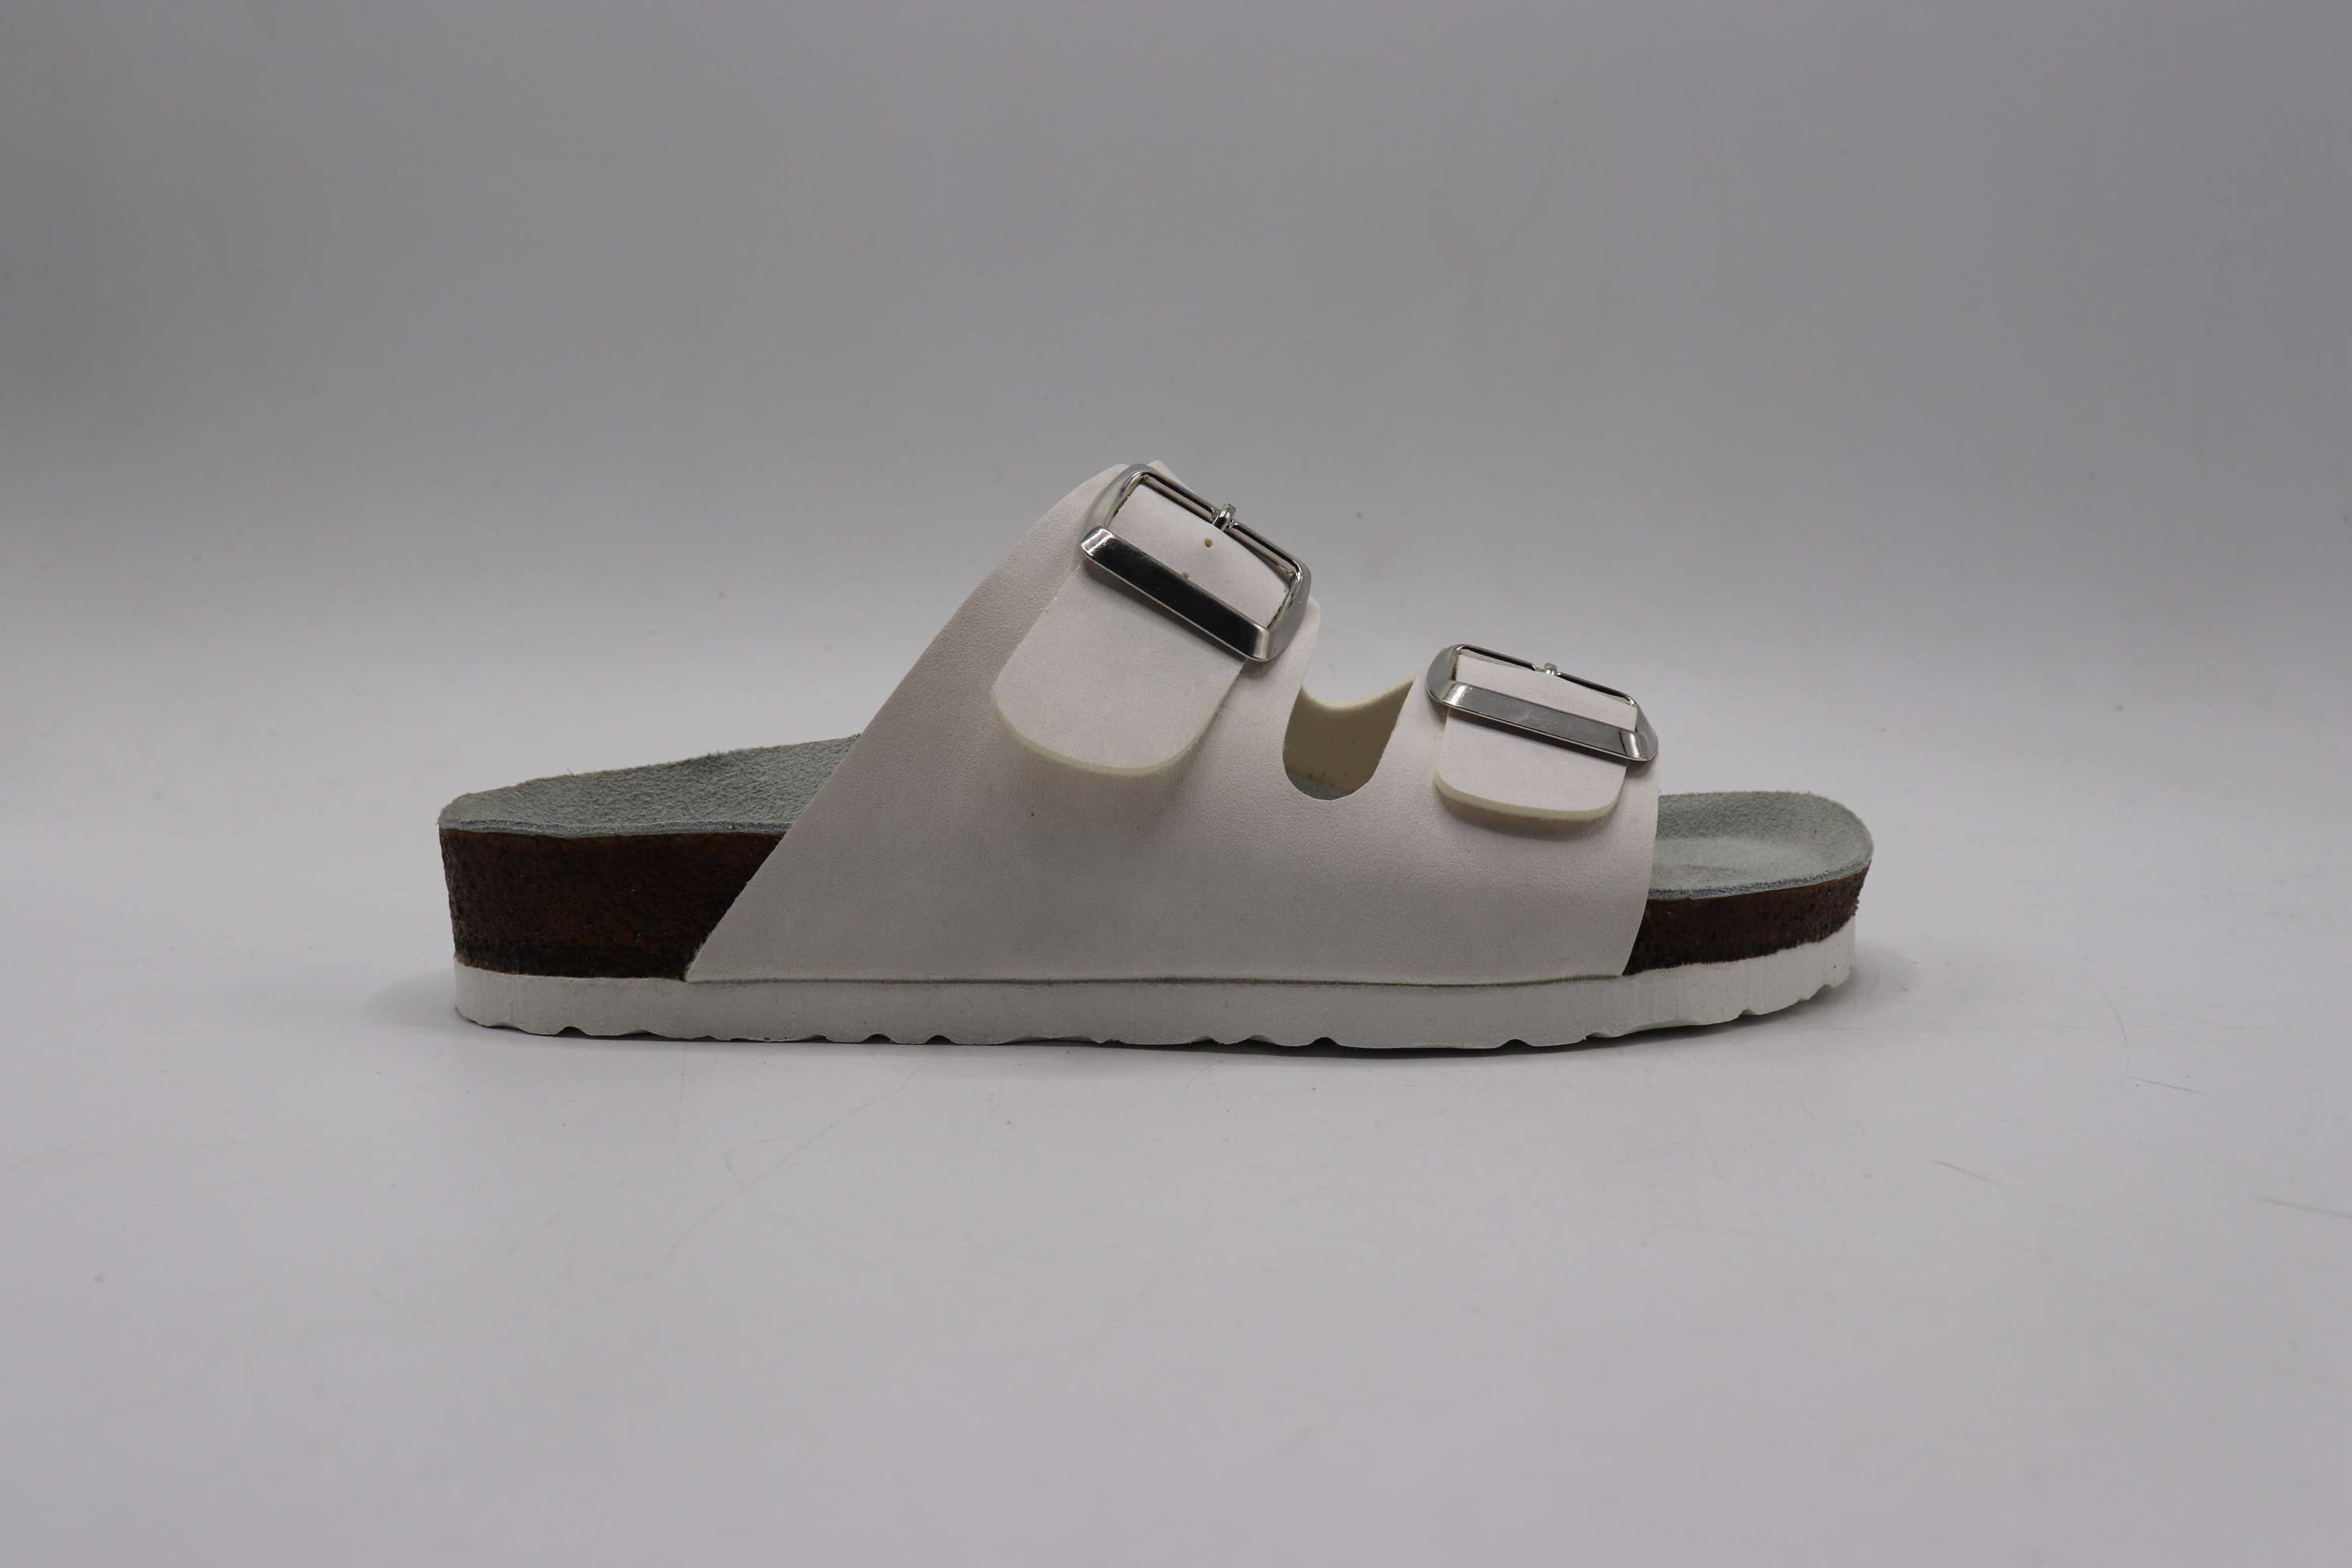 Pu Slippers with arch support